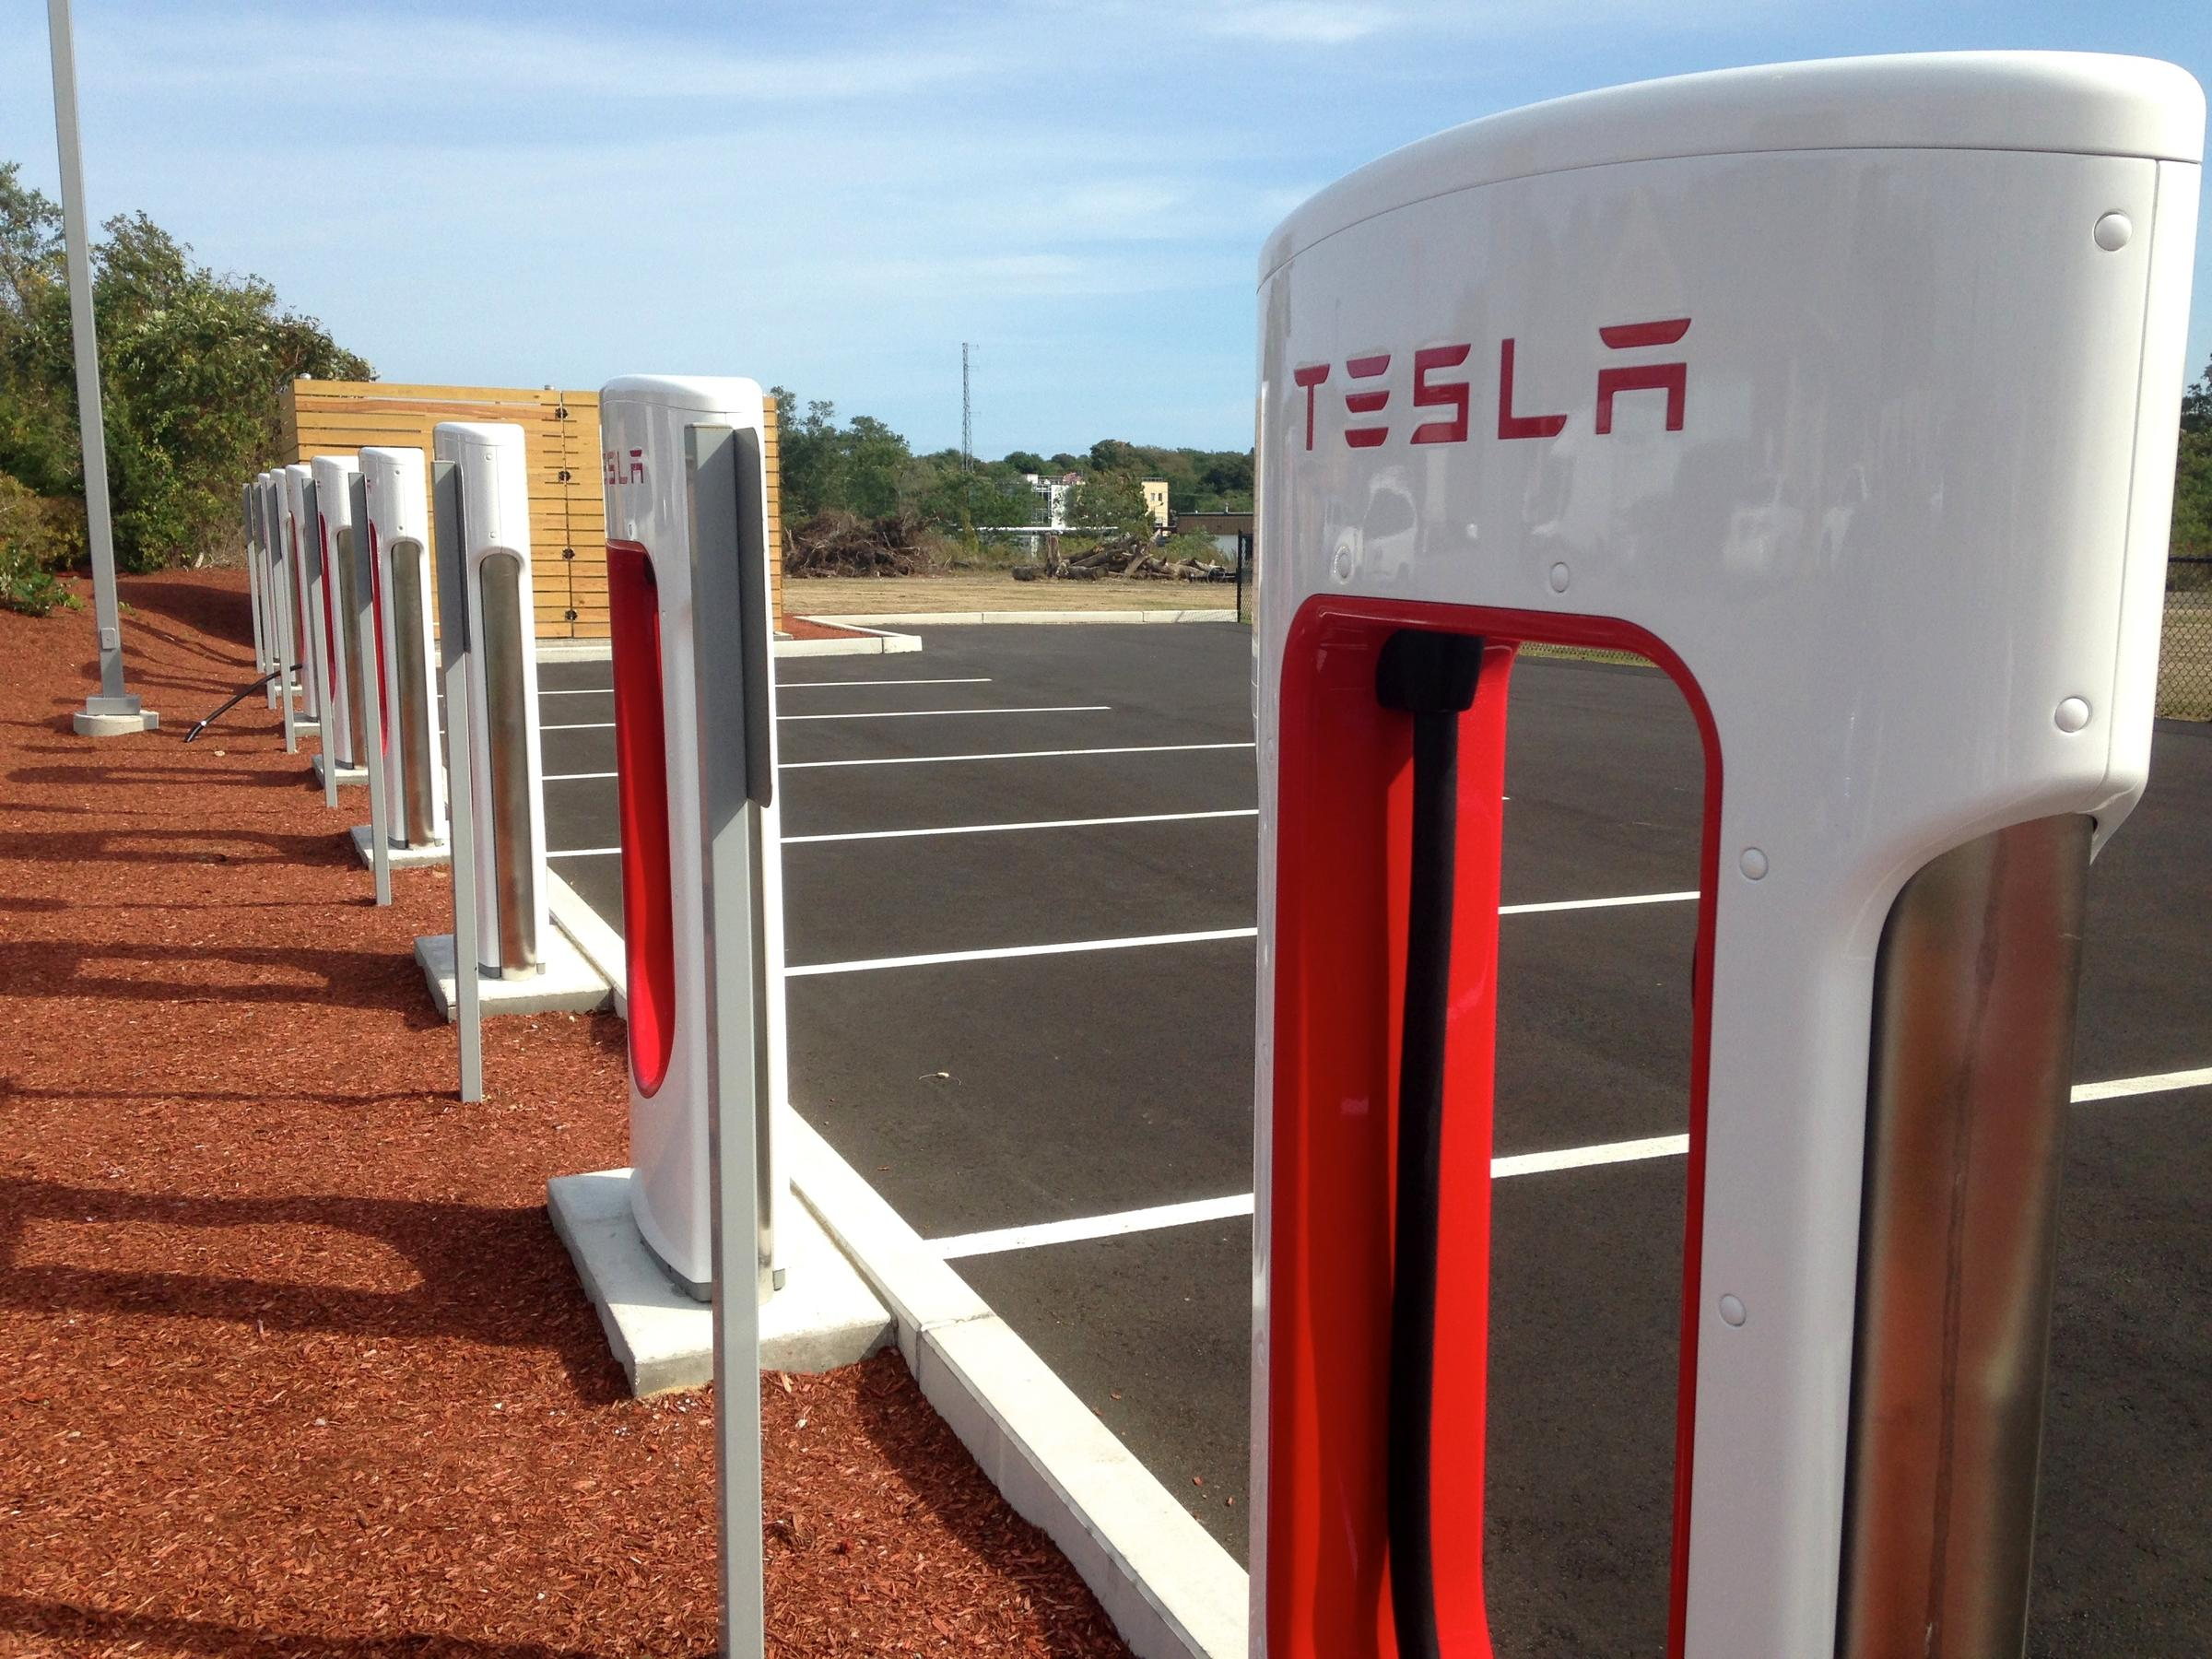 Electric Vehicle Charging Stations Still Sparse On Cape Islands And